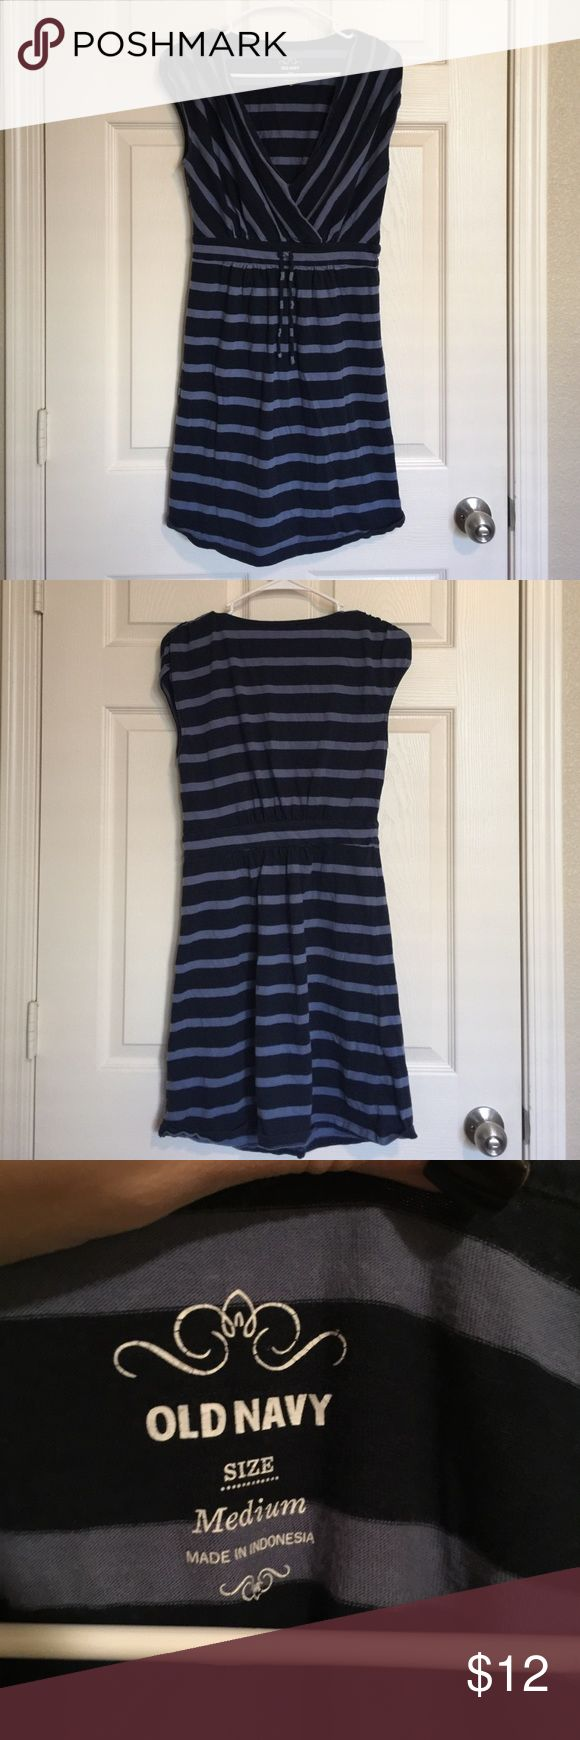 Old Navy striped dress Dark and light blue striped dress from Old Navy. Tie around the waist to become more form fitting. Old Navy Dresses Mini